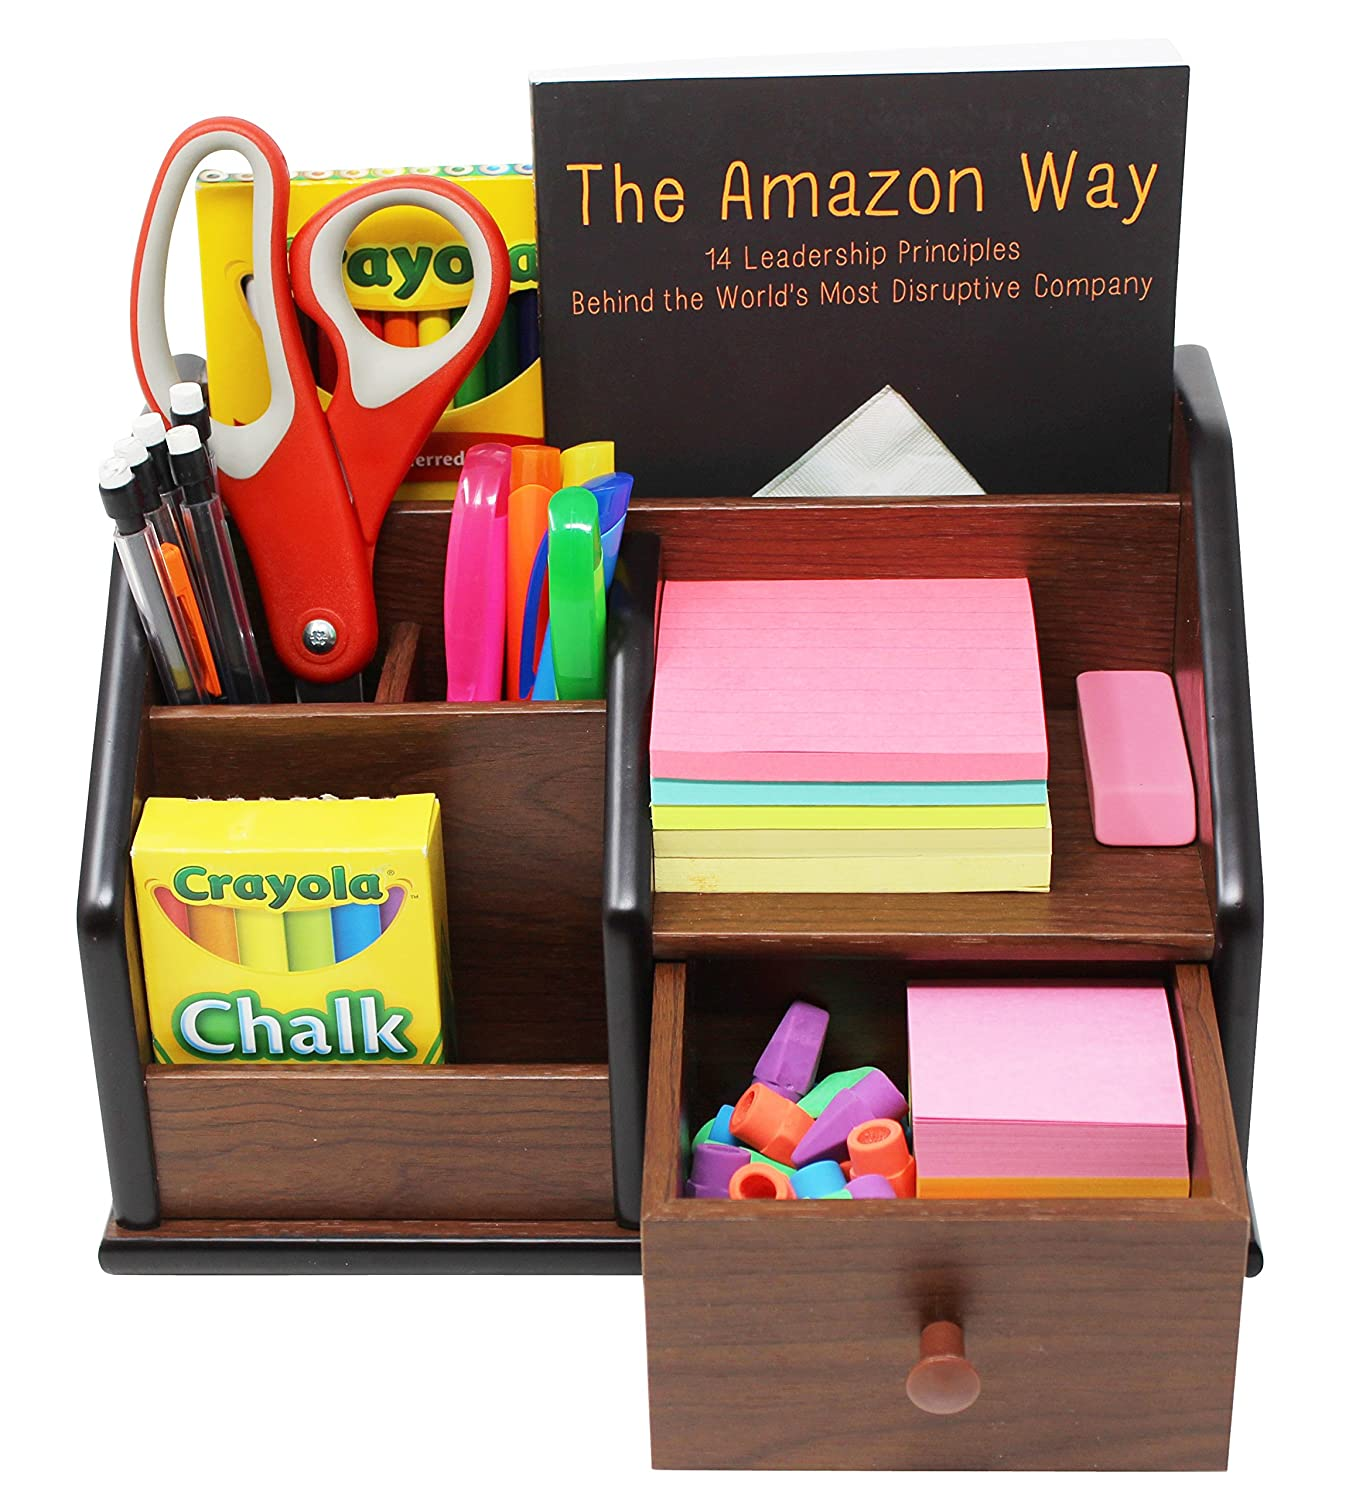 Office Organizer Multiple Supplies Accessories Image 3